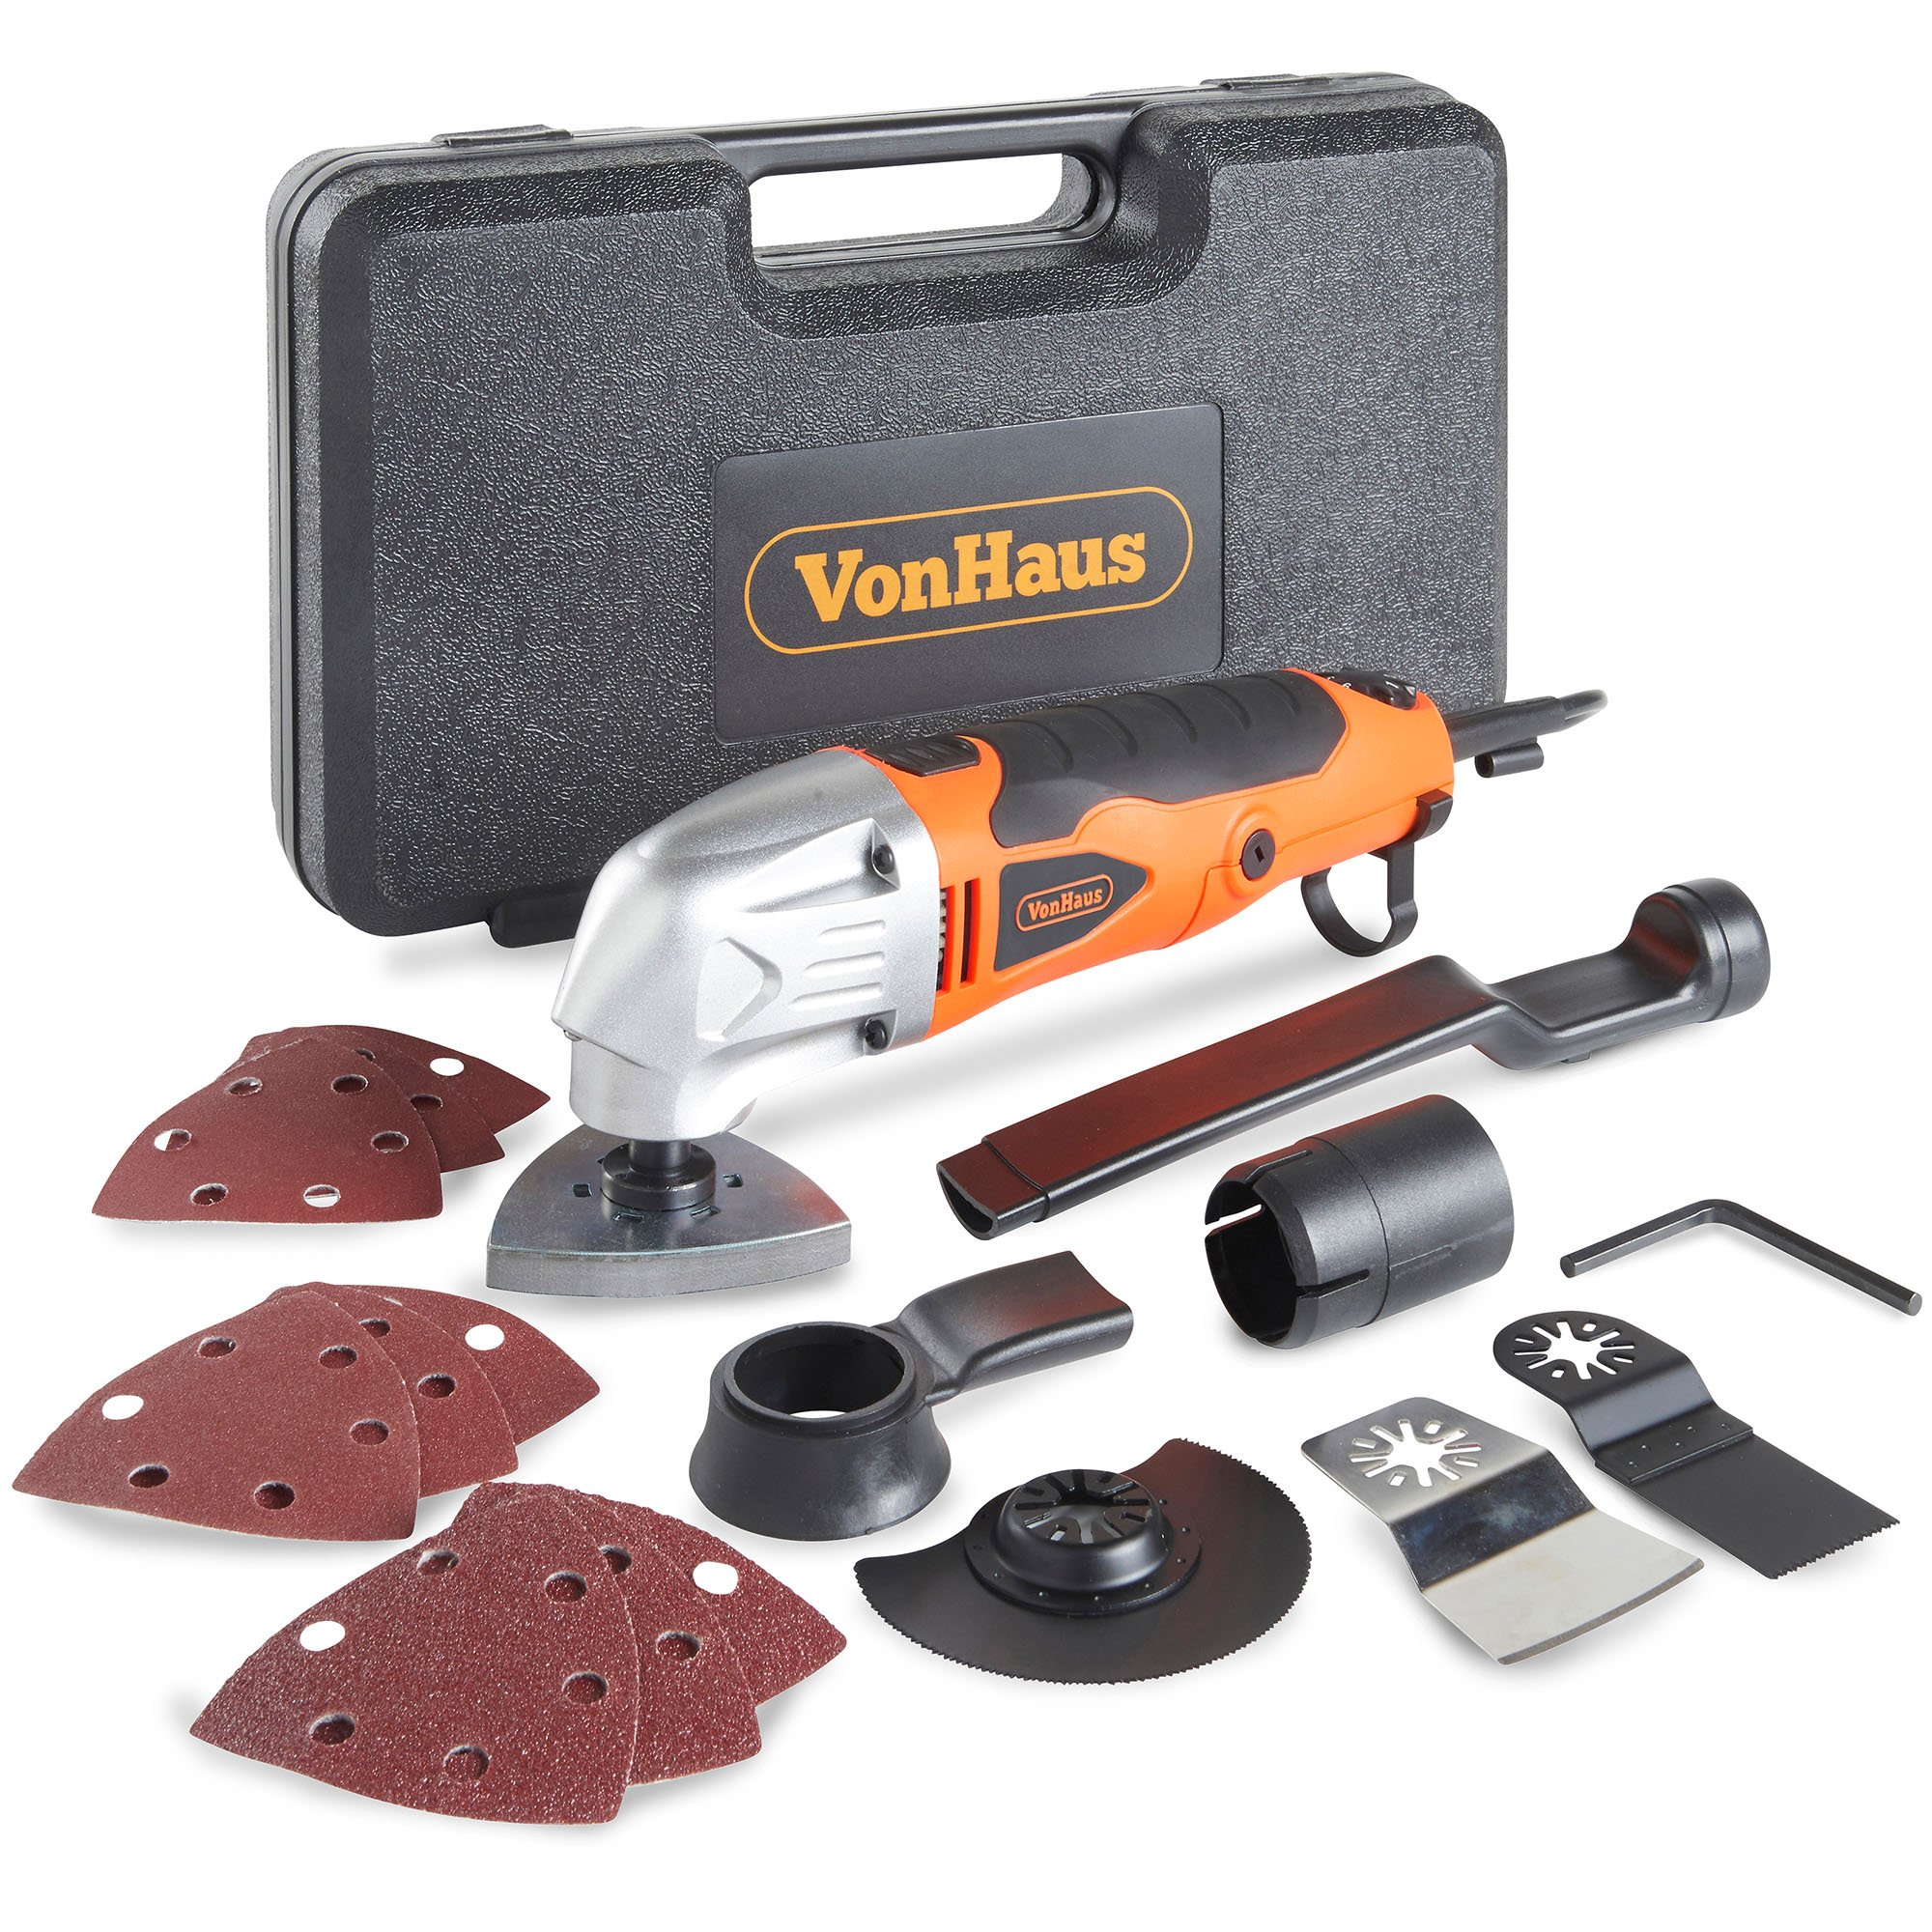 VonHaus 2.3 Amp Corded Multi-Purpose Oscillating Tool with 6 Variable Speeds, 15 Accessories Including Half Moon Saw, E-Cut Blade, 9 Sanding Paper Pads and Carry Storage Case